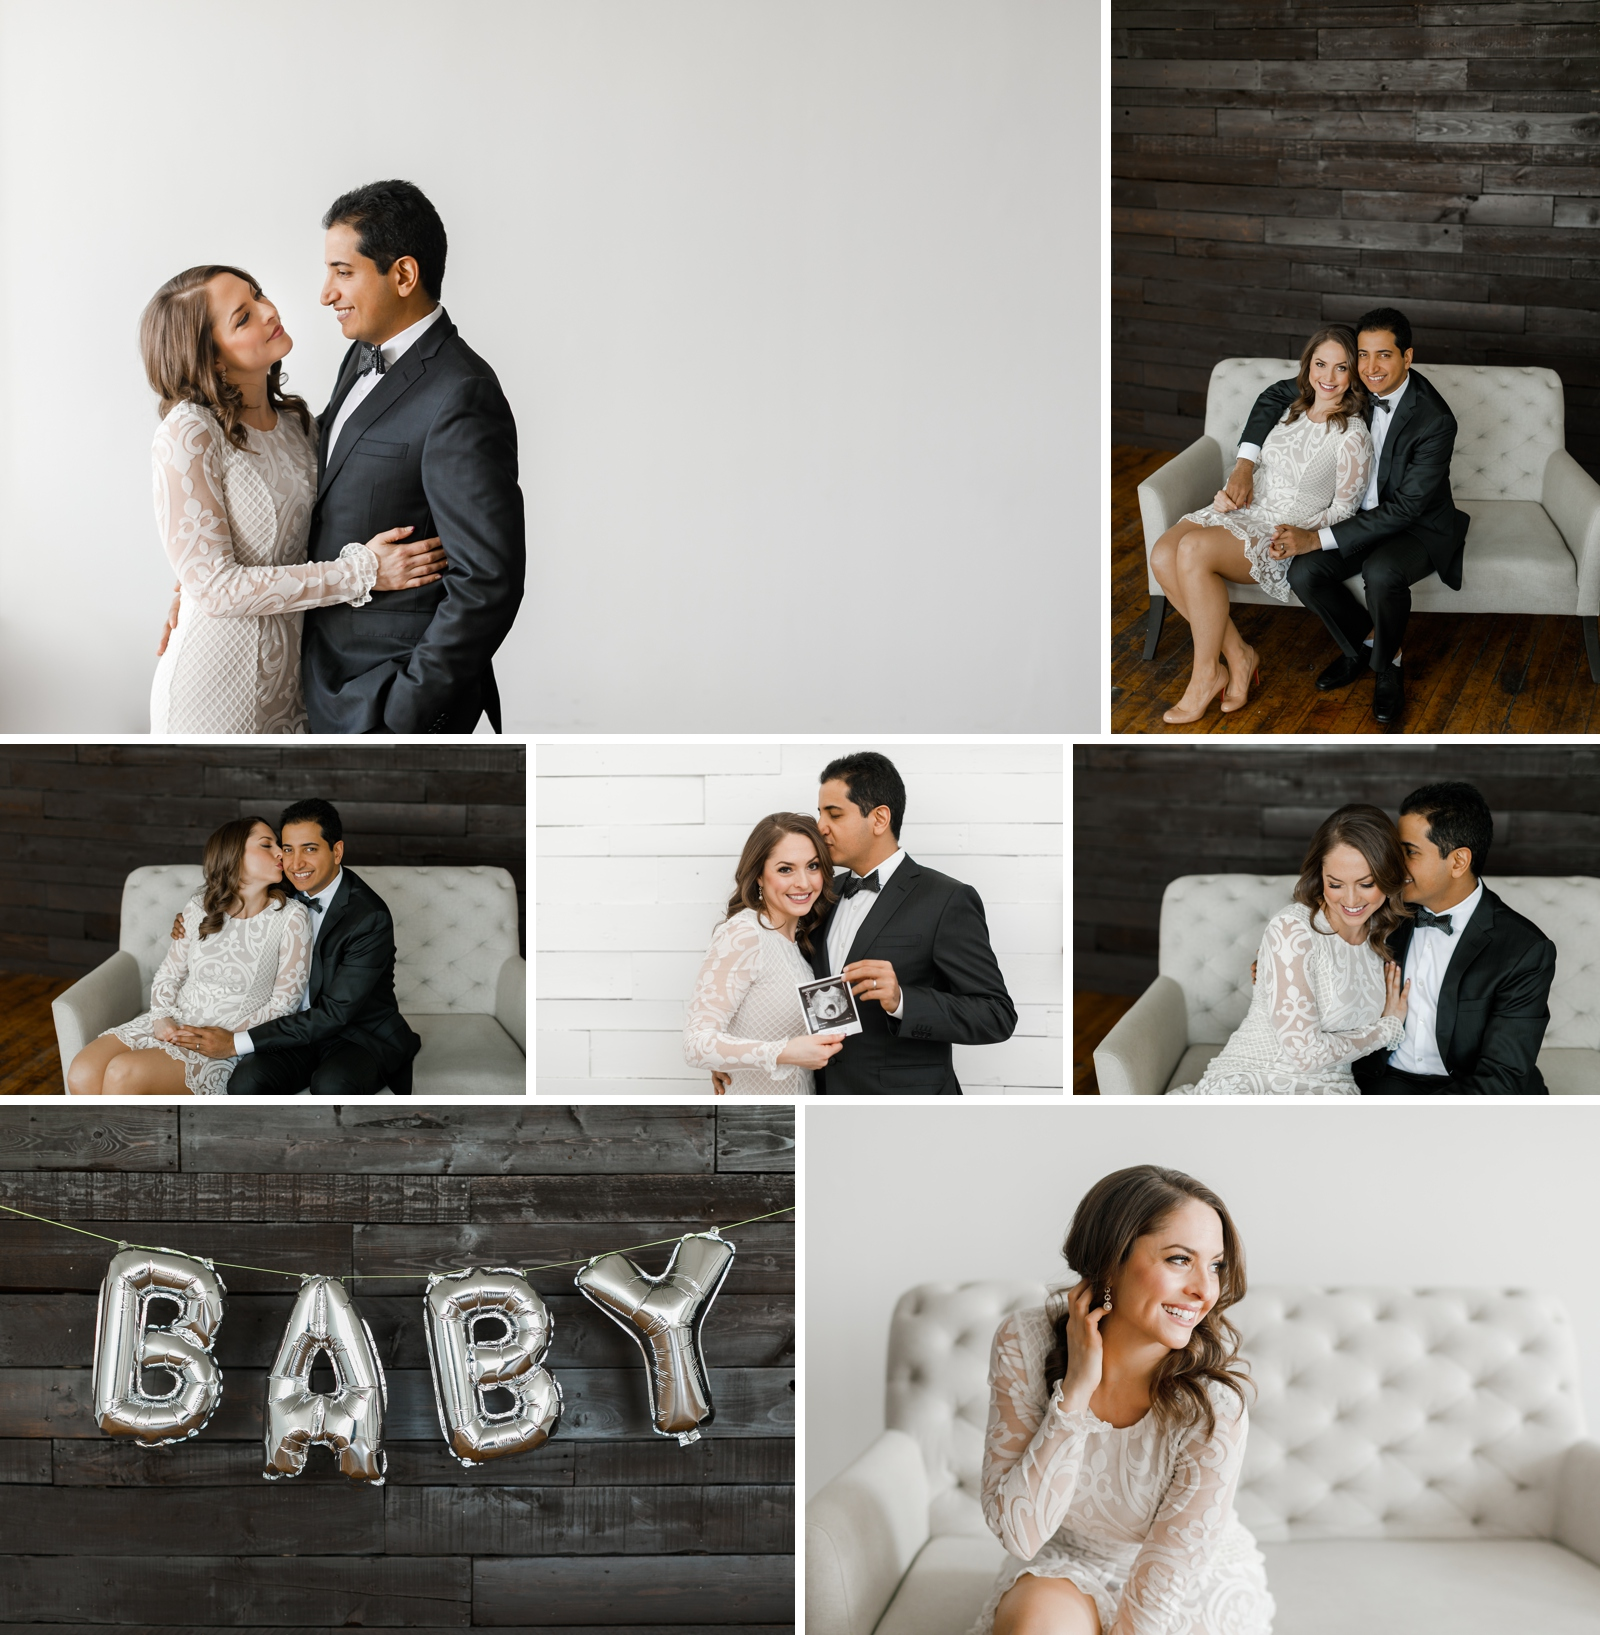 chicago-maternity-modern-lifestyle-photographer-jenny-grimm-pregnancy-announcement-photography_0008.jpg